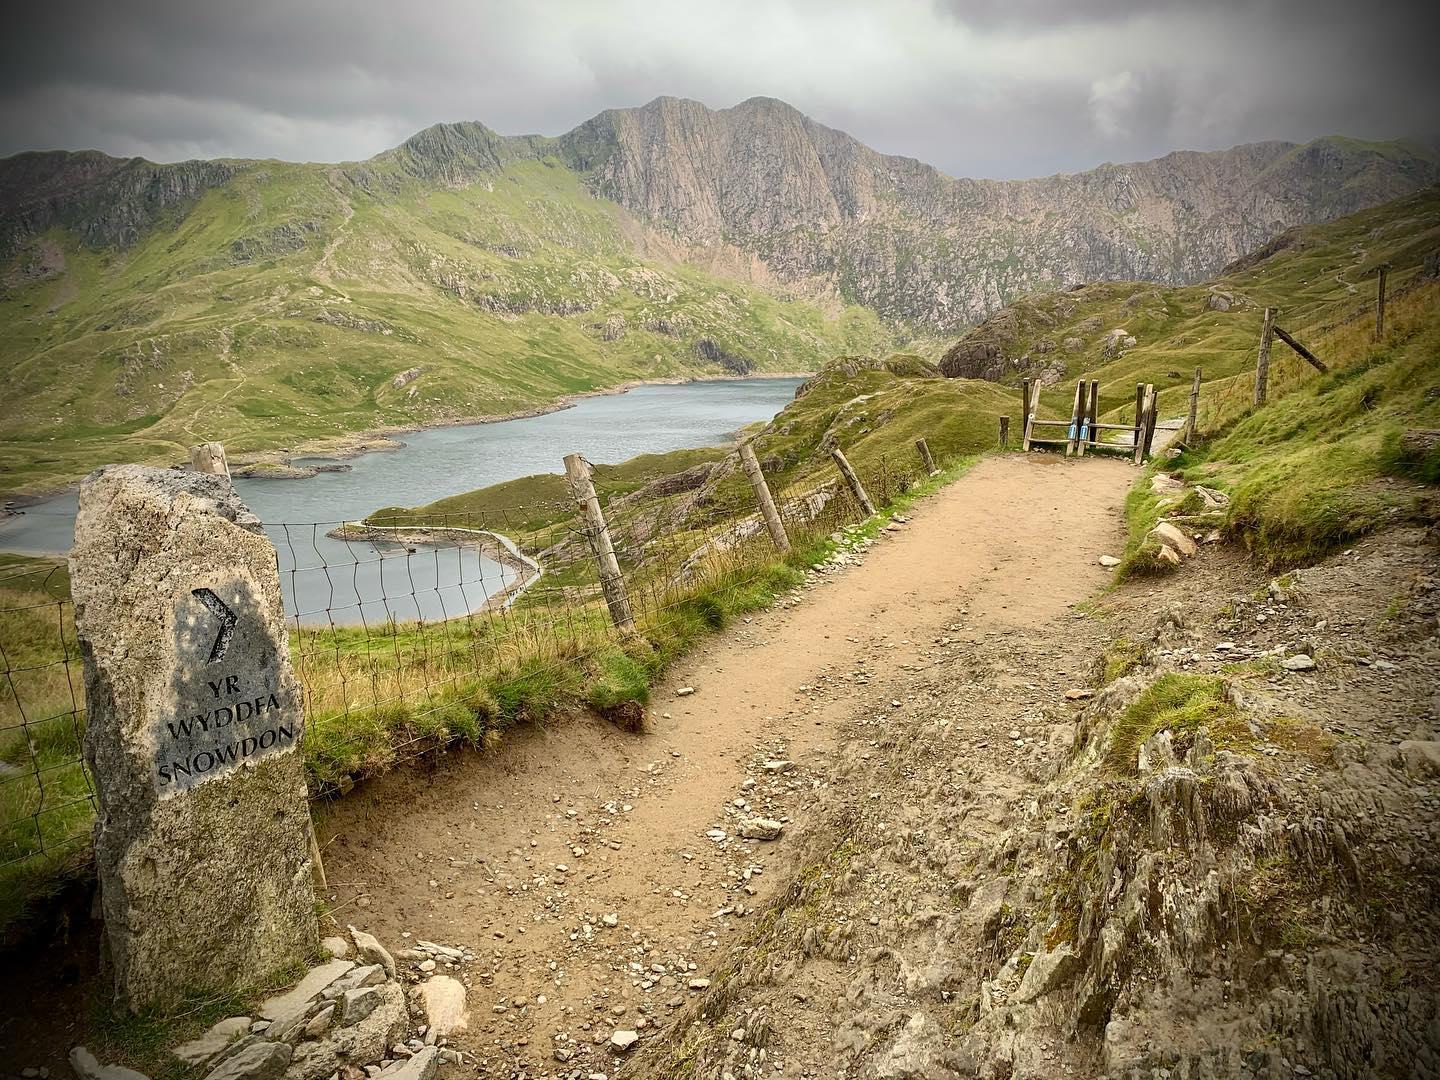 Adventures this way! We love this moody shot from a guided walk up Snowdon this summer, views that never get old! ⛰🥾⛰ . . . #wildernessdevelopment #snowdon #snowdonia #snowdonianationalpark #pygtrack #penypass #guidedwalk #hikebritain #lovemyoffice #outdooroffice  #hikingadventures #ukhikingofficial #hiking #hikersuk #mapmyhike #outdoorhikingculture #mountainsfellsandhikes #outdoorpursuits #outdooradventures #outdooractivities